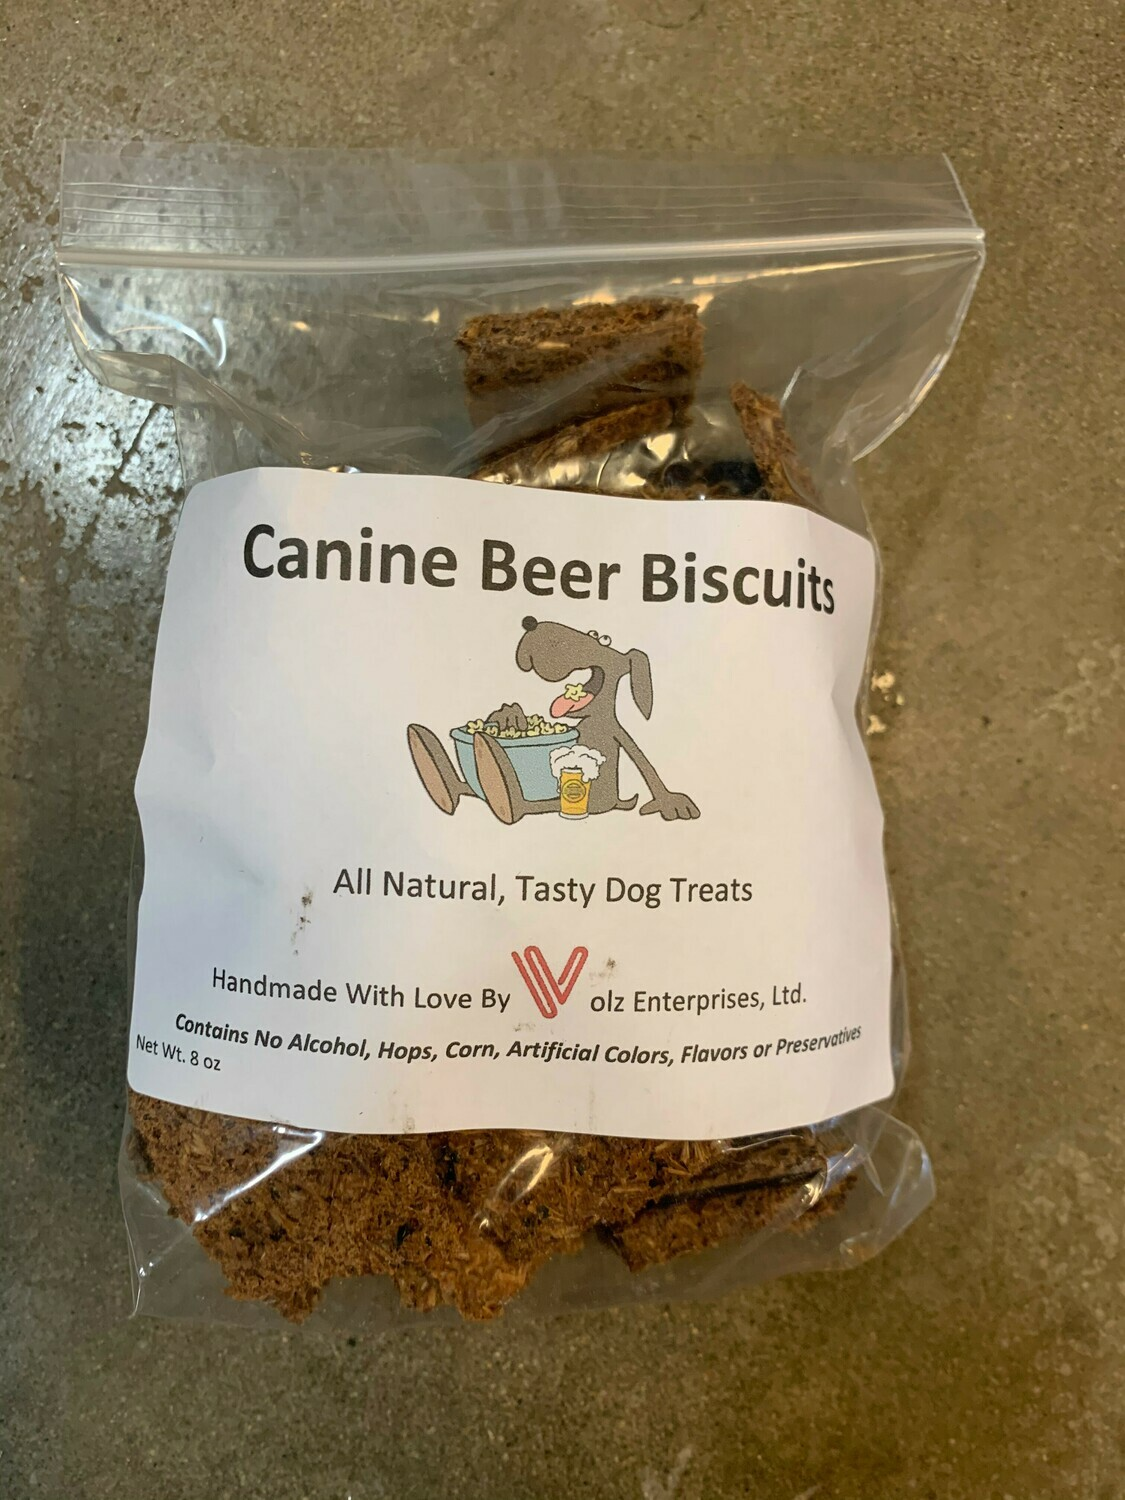 Canine Beer Biscuits